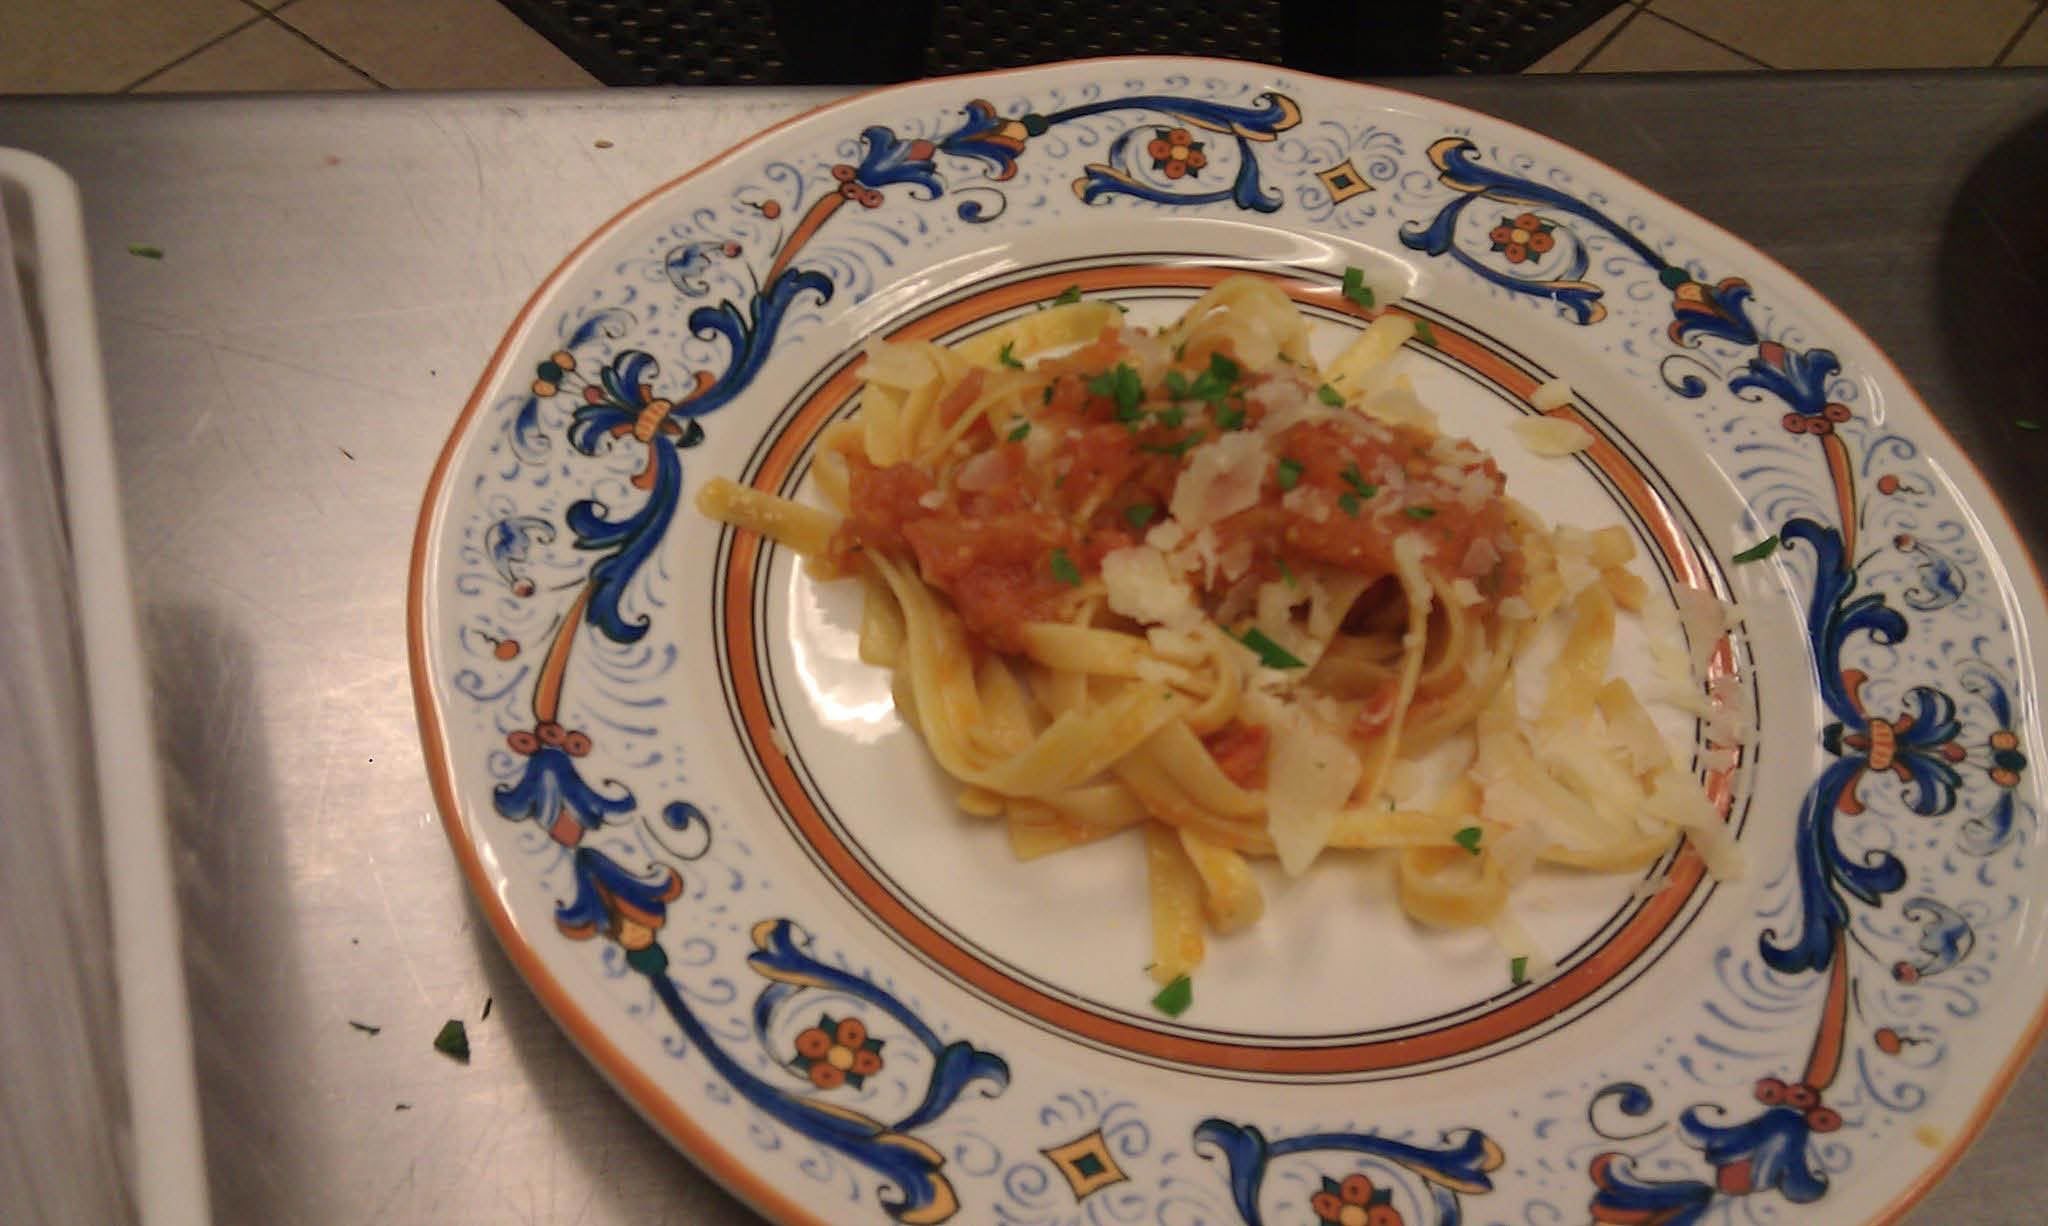 The Glen Cafe Dinner serves Pasta to the residents of Shorewood, WI.